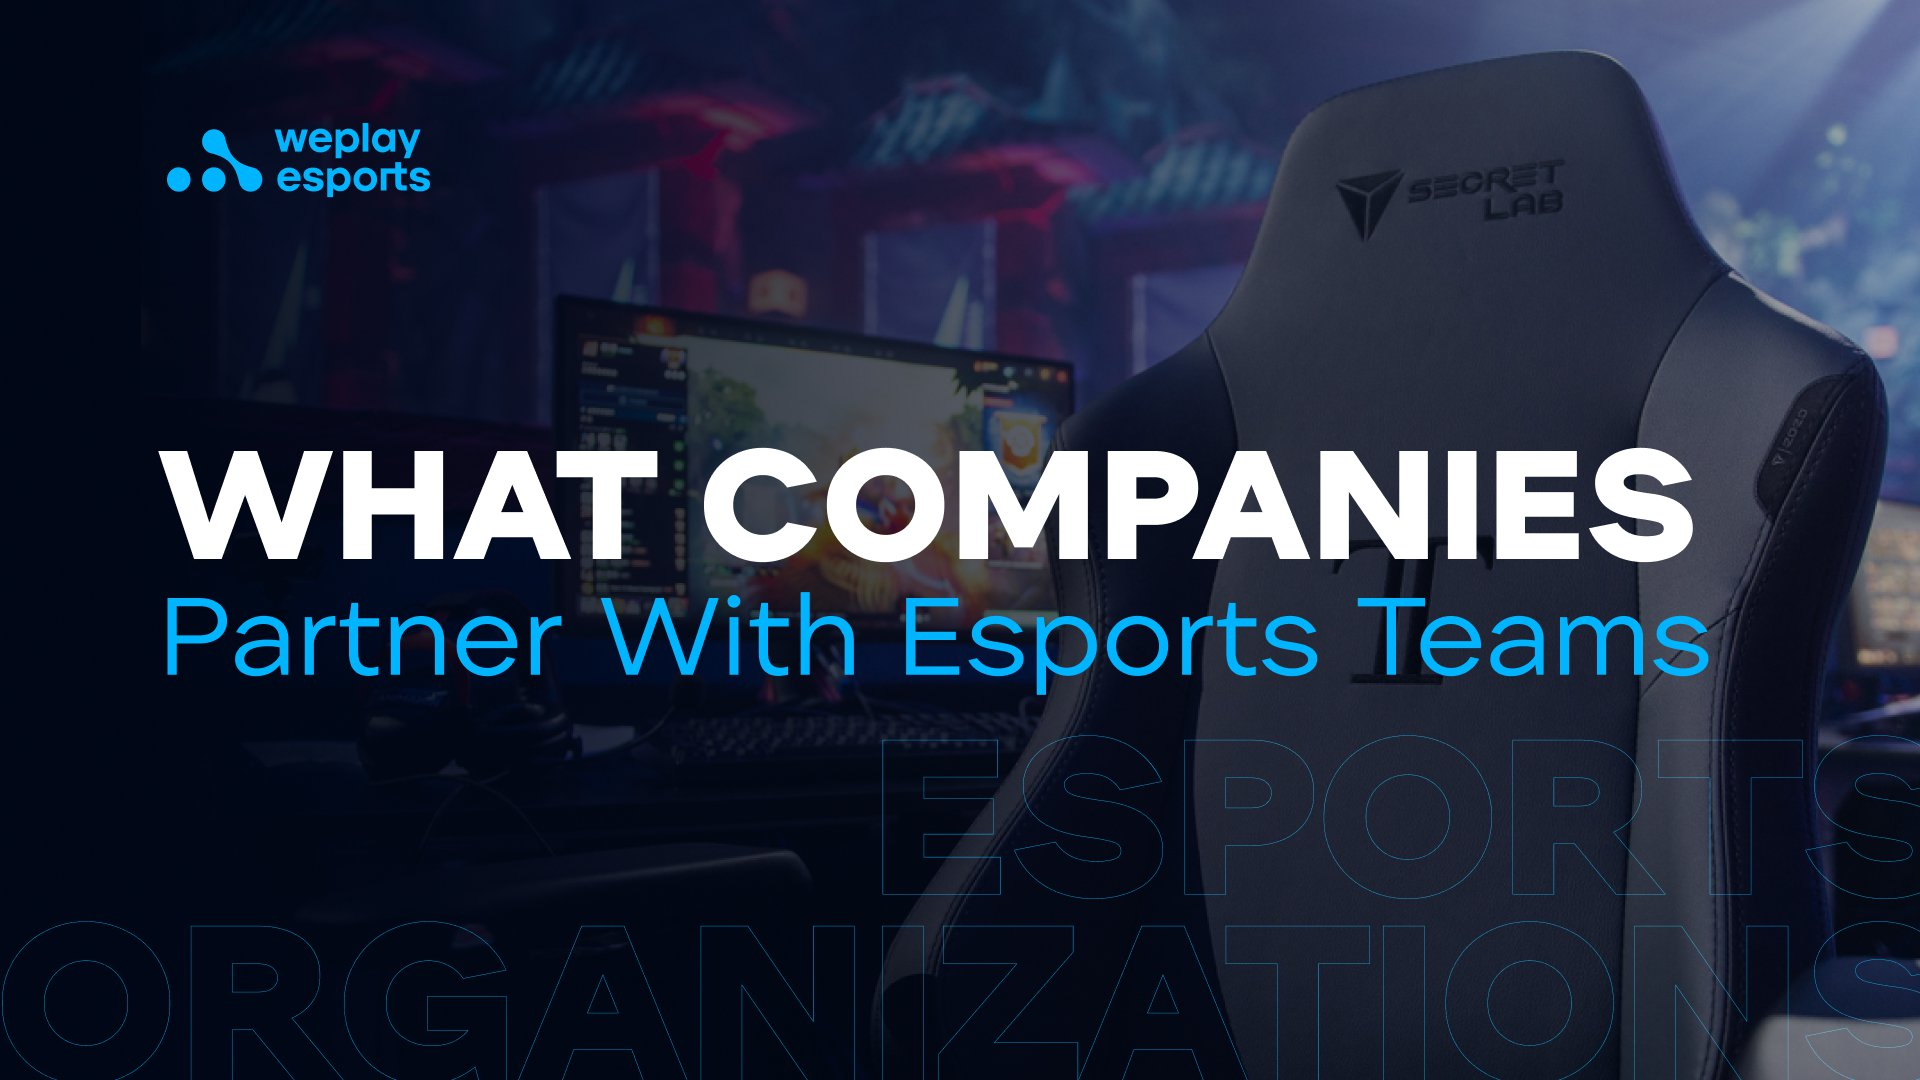 What Companies Partner With Esports Teams